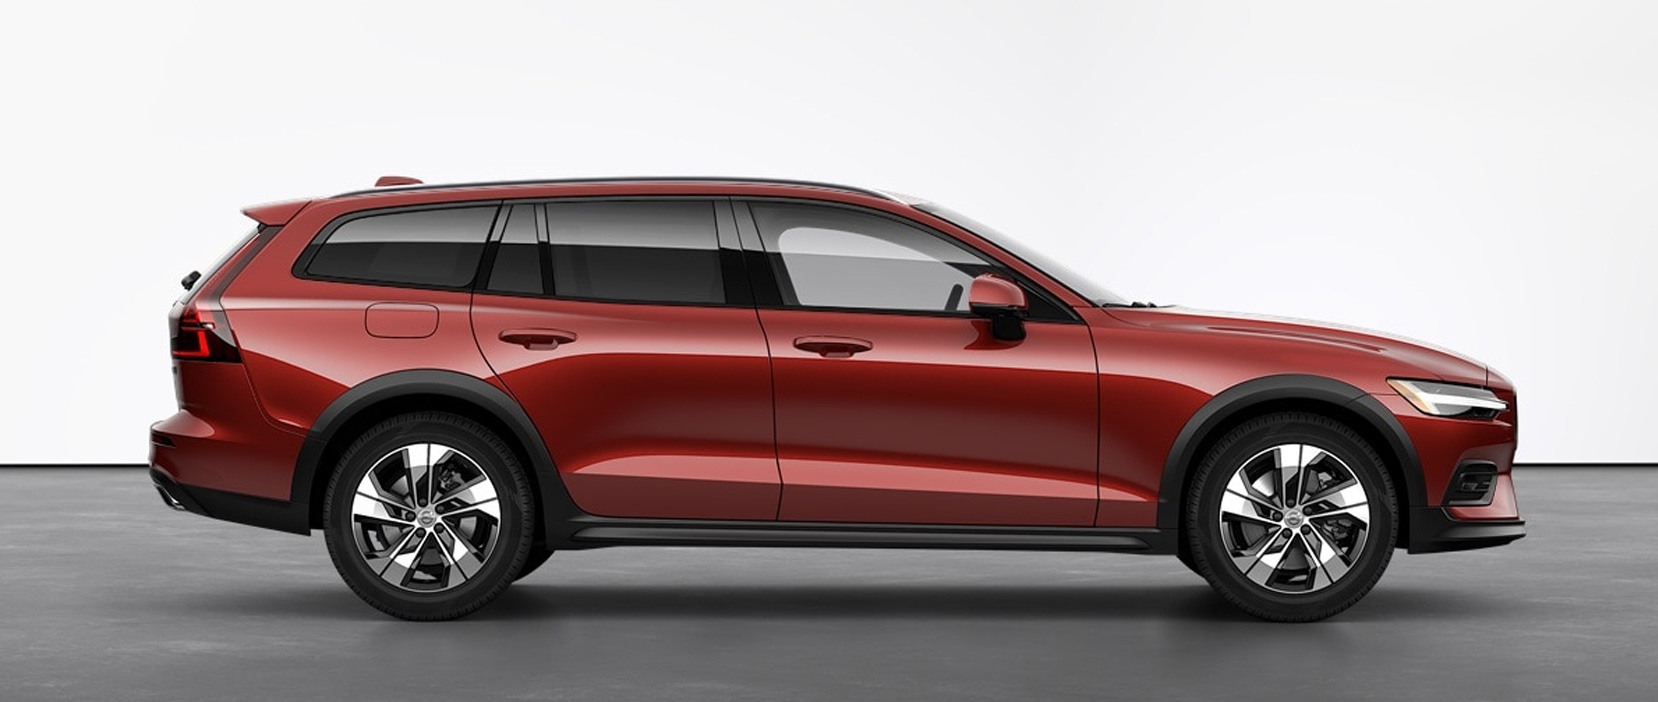 2021 Volvo V60 Cross Country T5 AWD shown